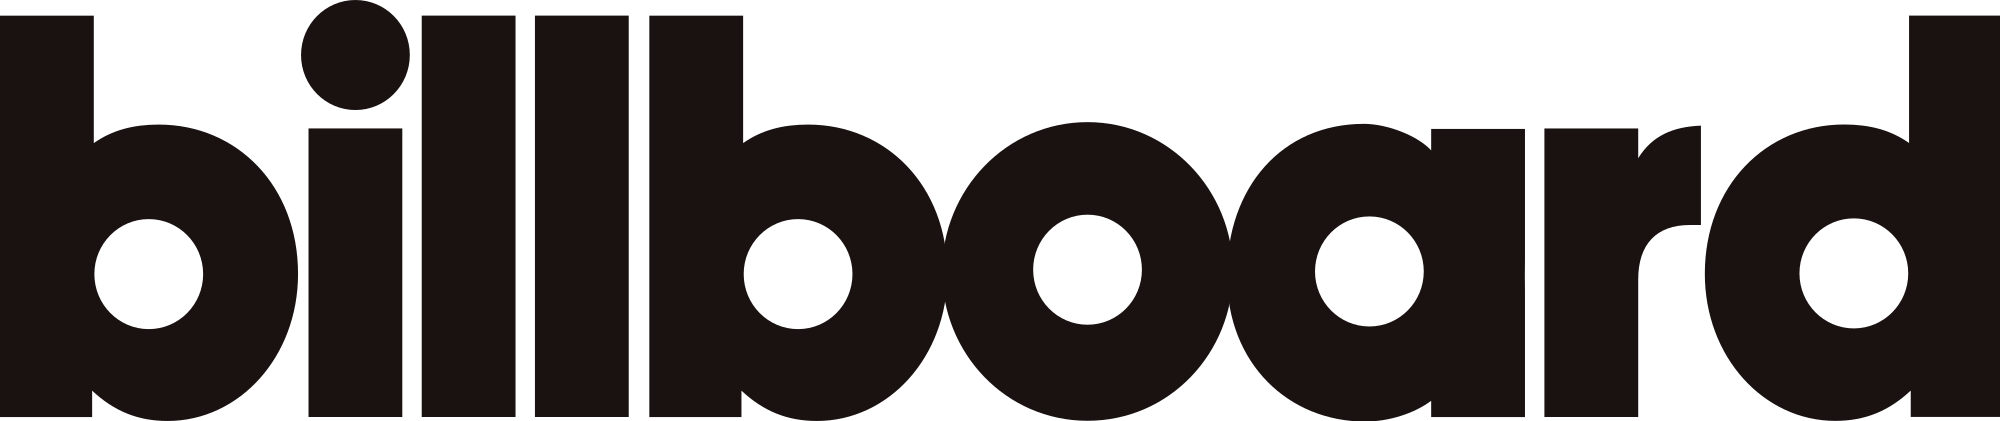 billboard-png-logo-1